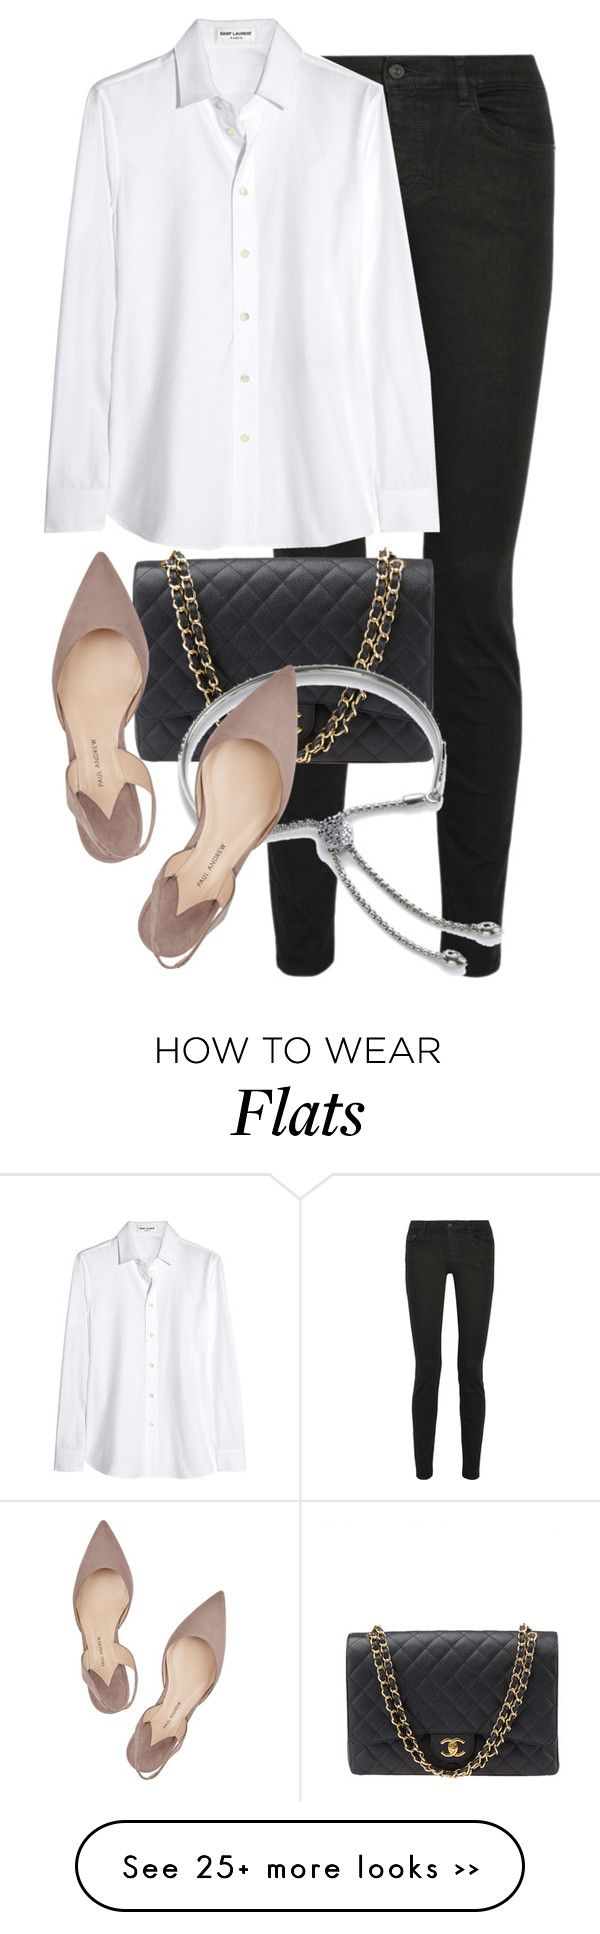 """Yves Saint Laurent x Chanel"" by xxxxxxxx1111 on Polyvore"